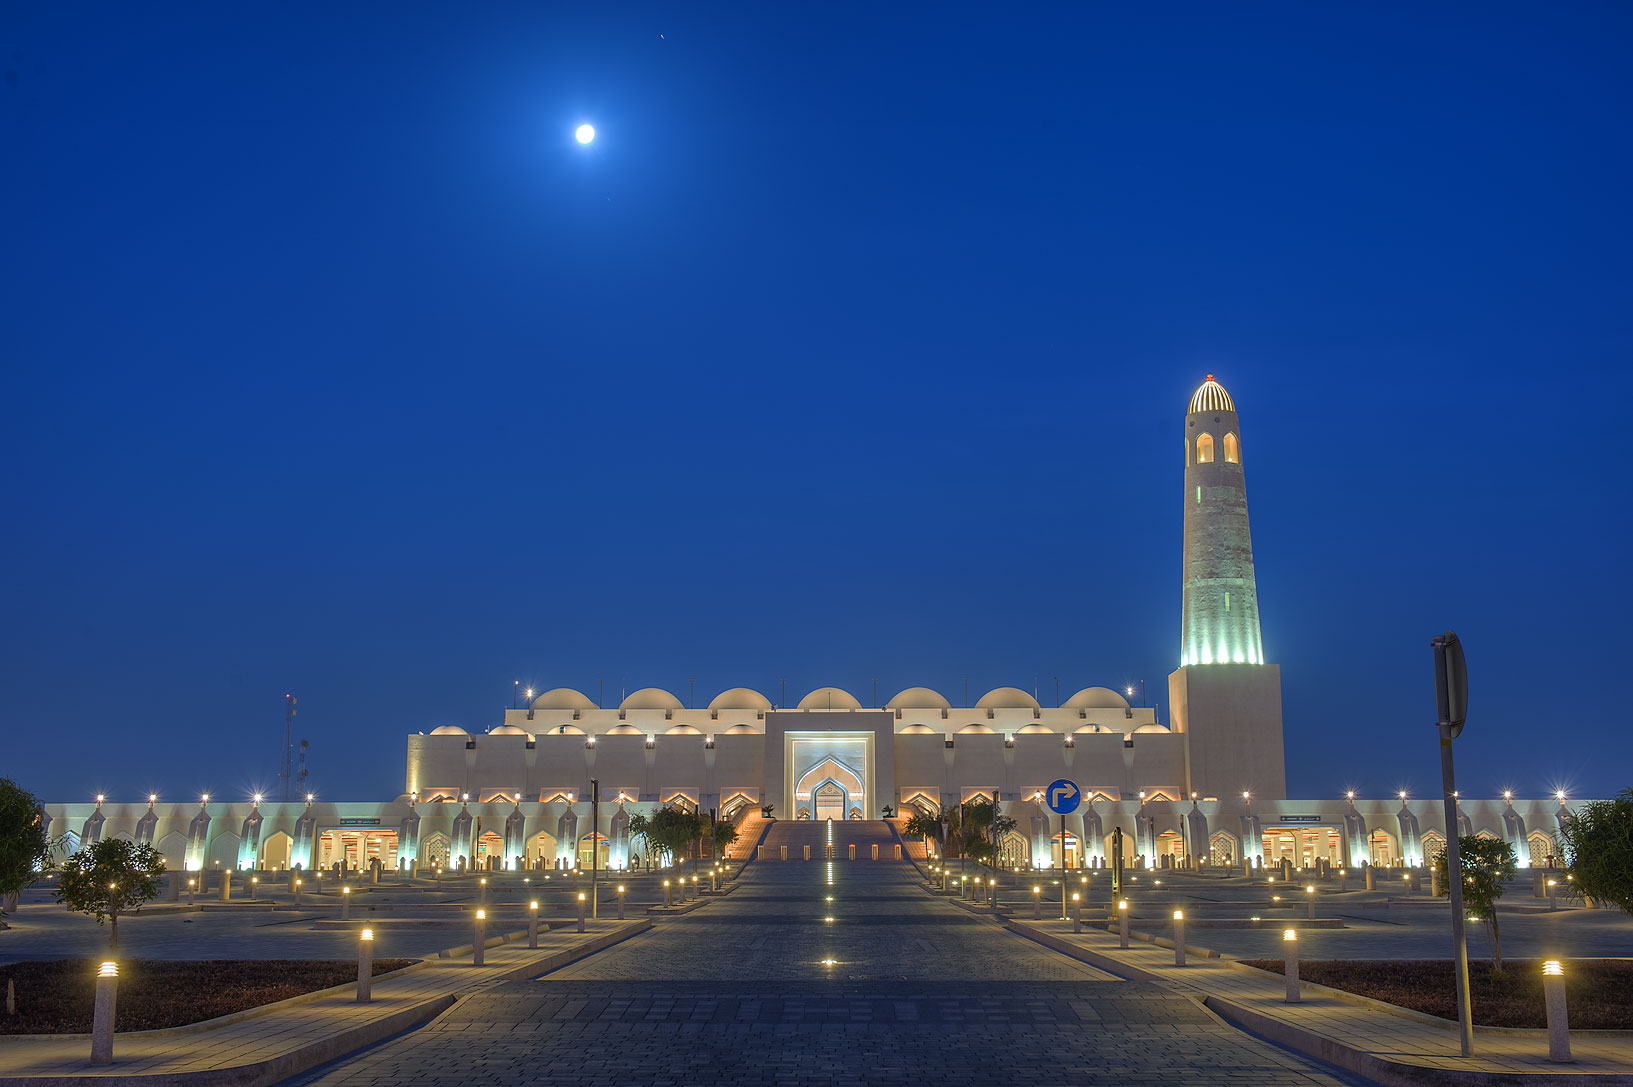 State Mosque (Sheikh Muhammad Ibn Abdul Wahhab Mosque) at morning. Doha, Qatar